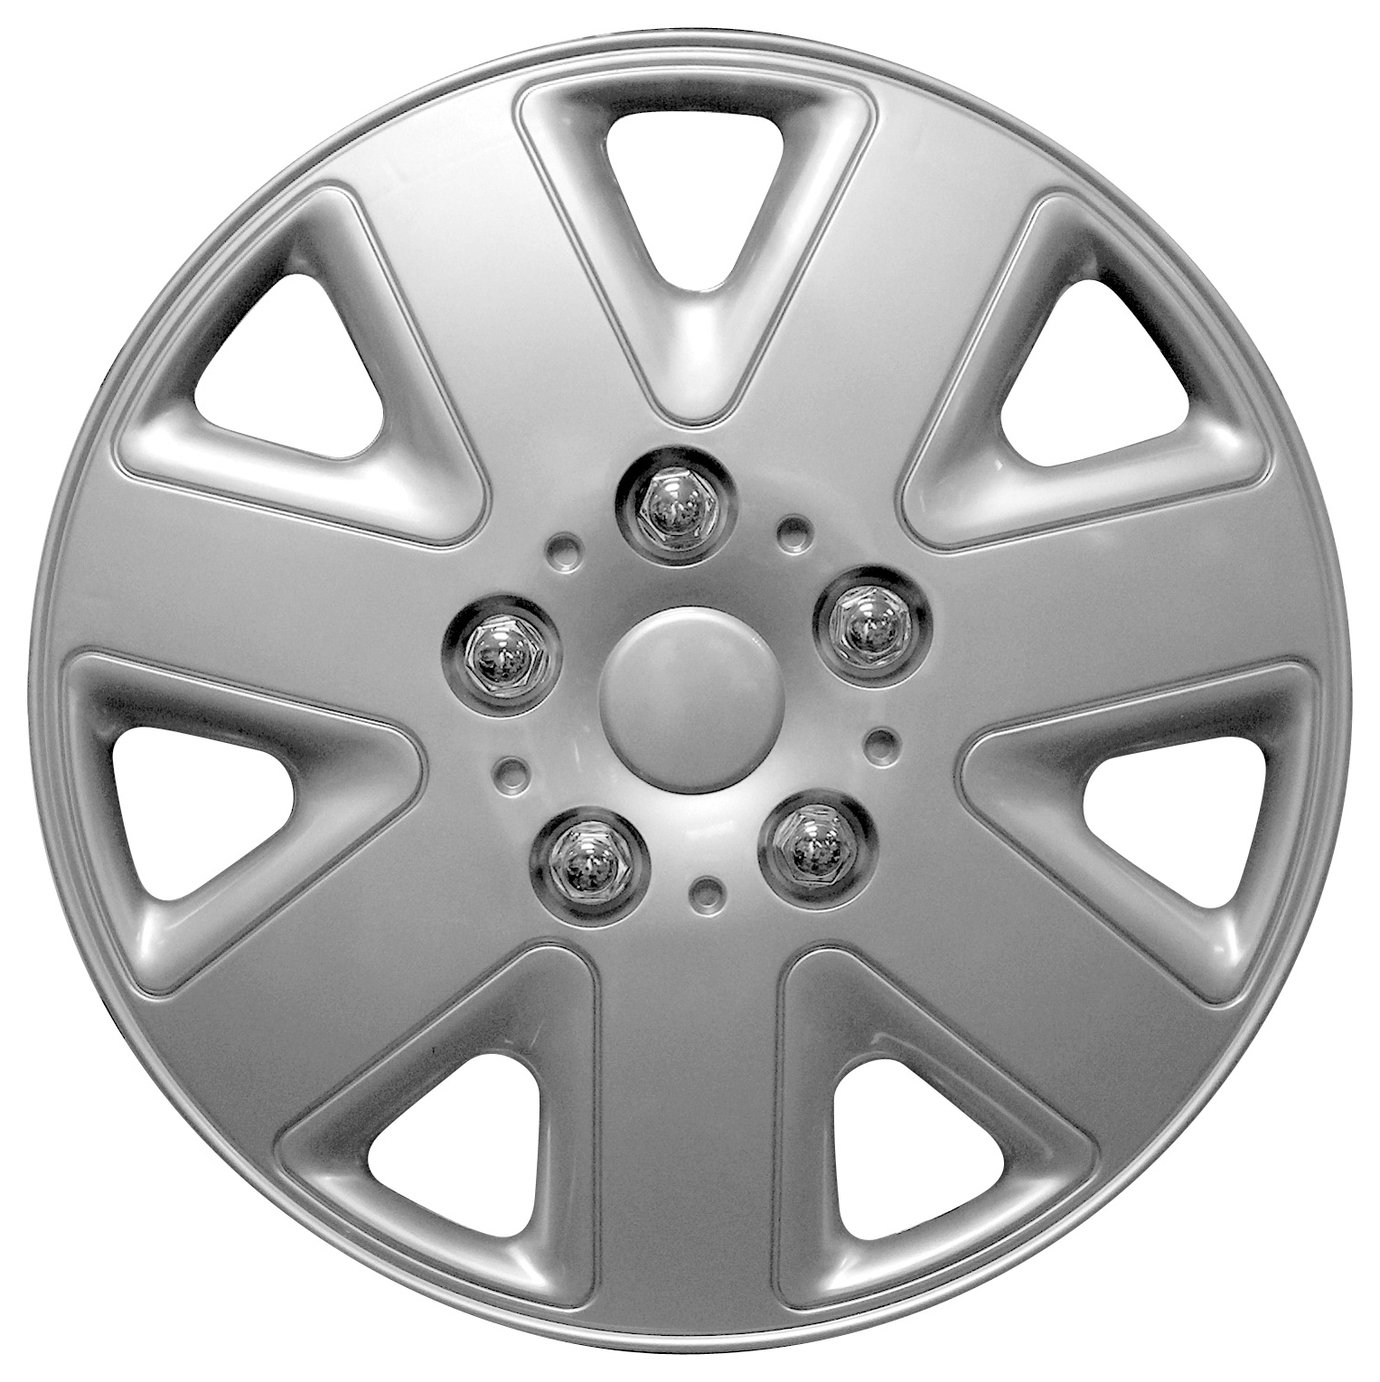 Streetwize 16 Inch Hurricane Wheel Cover Set.